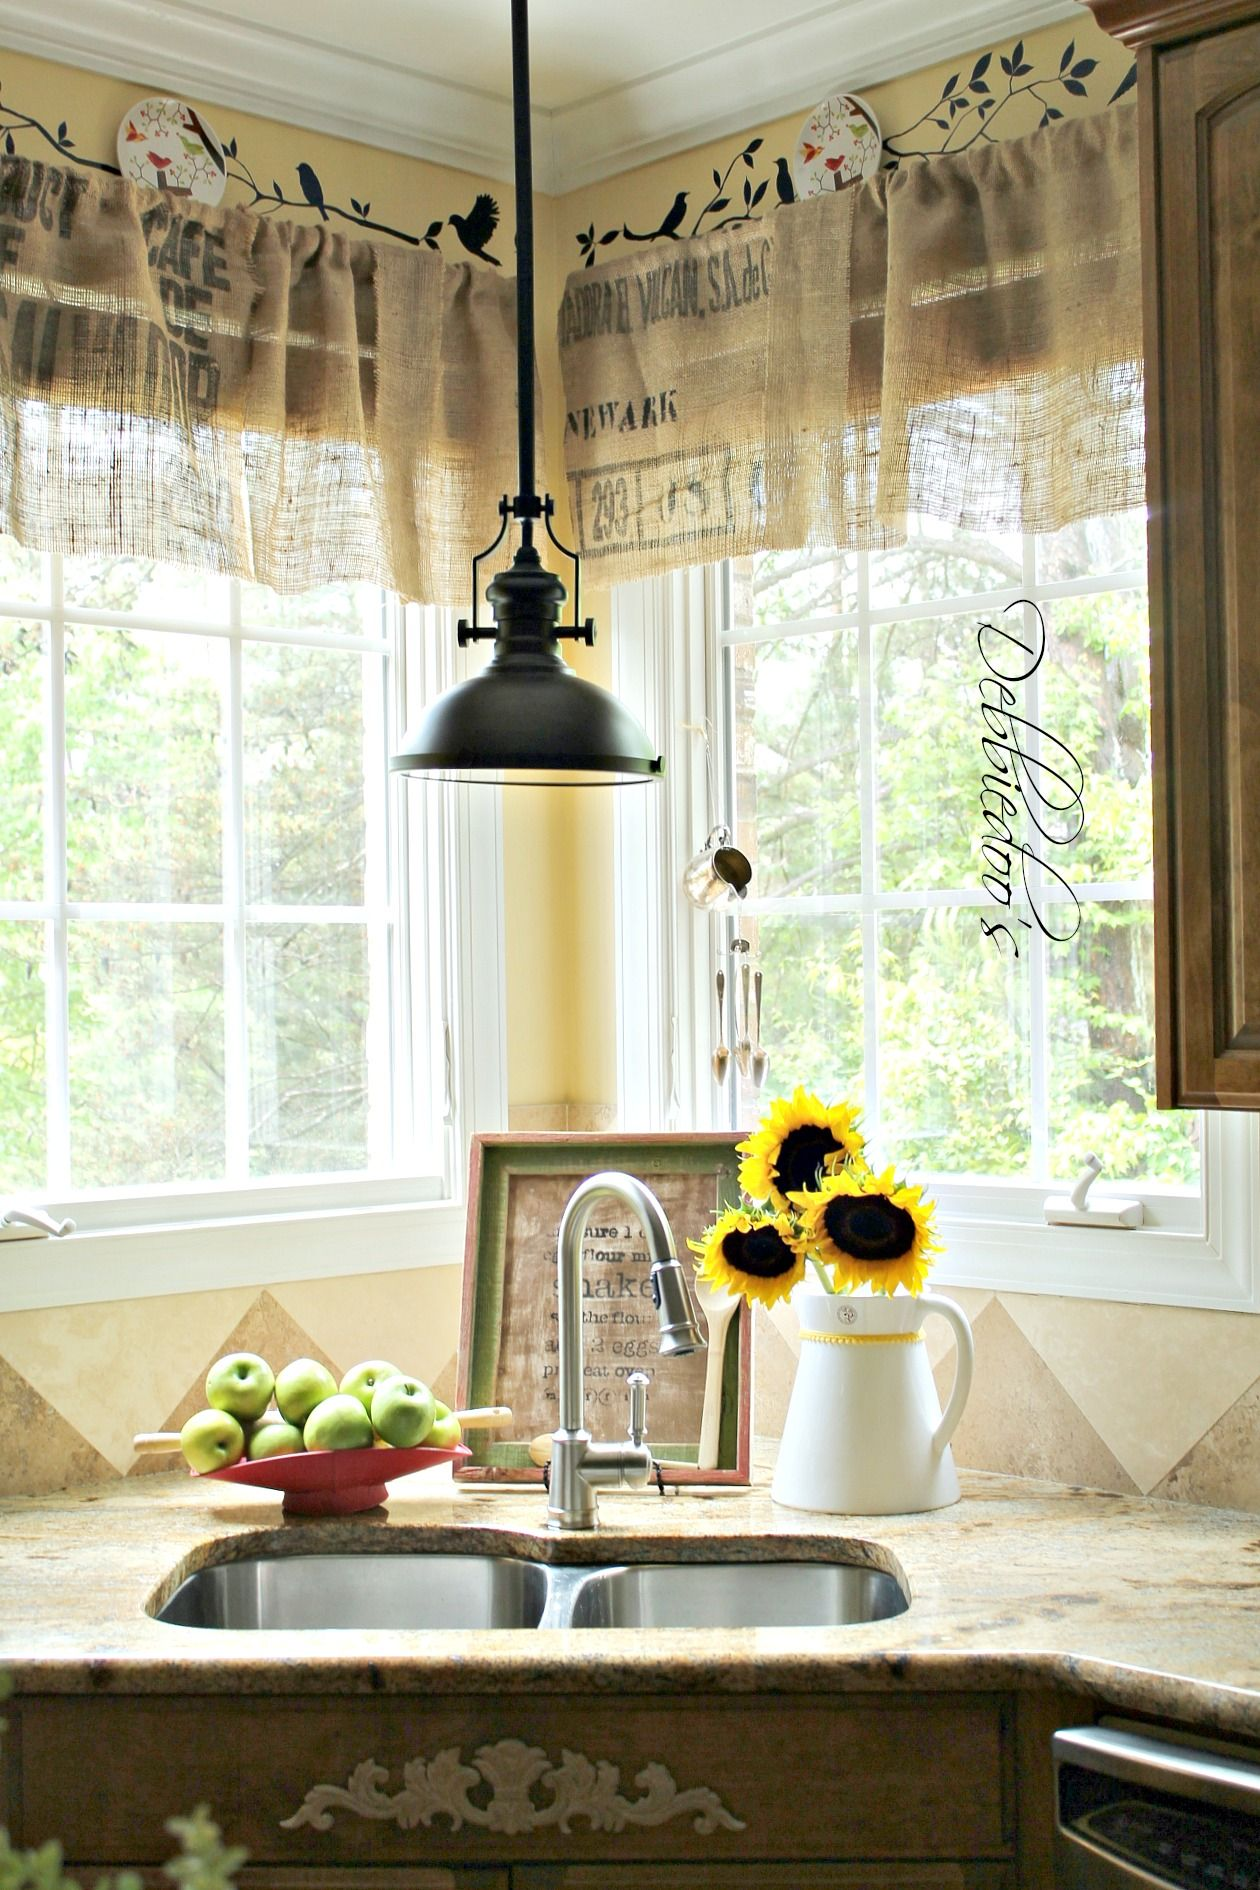 Diy No Sew Burlap Kitchen Valances Made From Coffee Bags Debbiedoo S Burlap Kitchen Kitchen Valances Decor